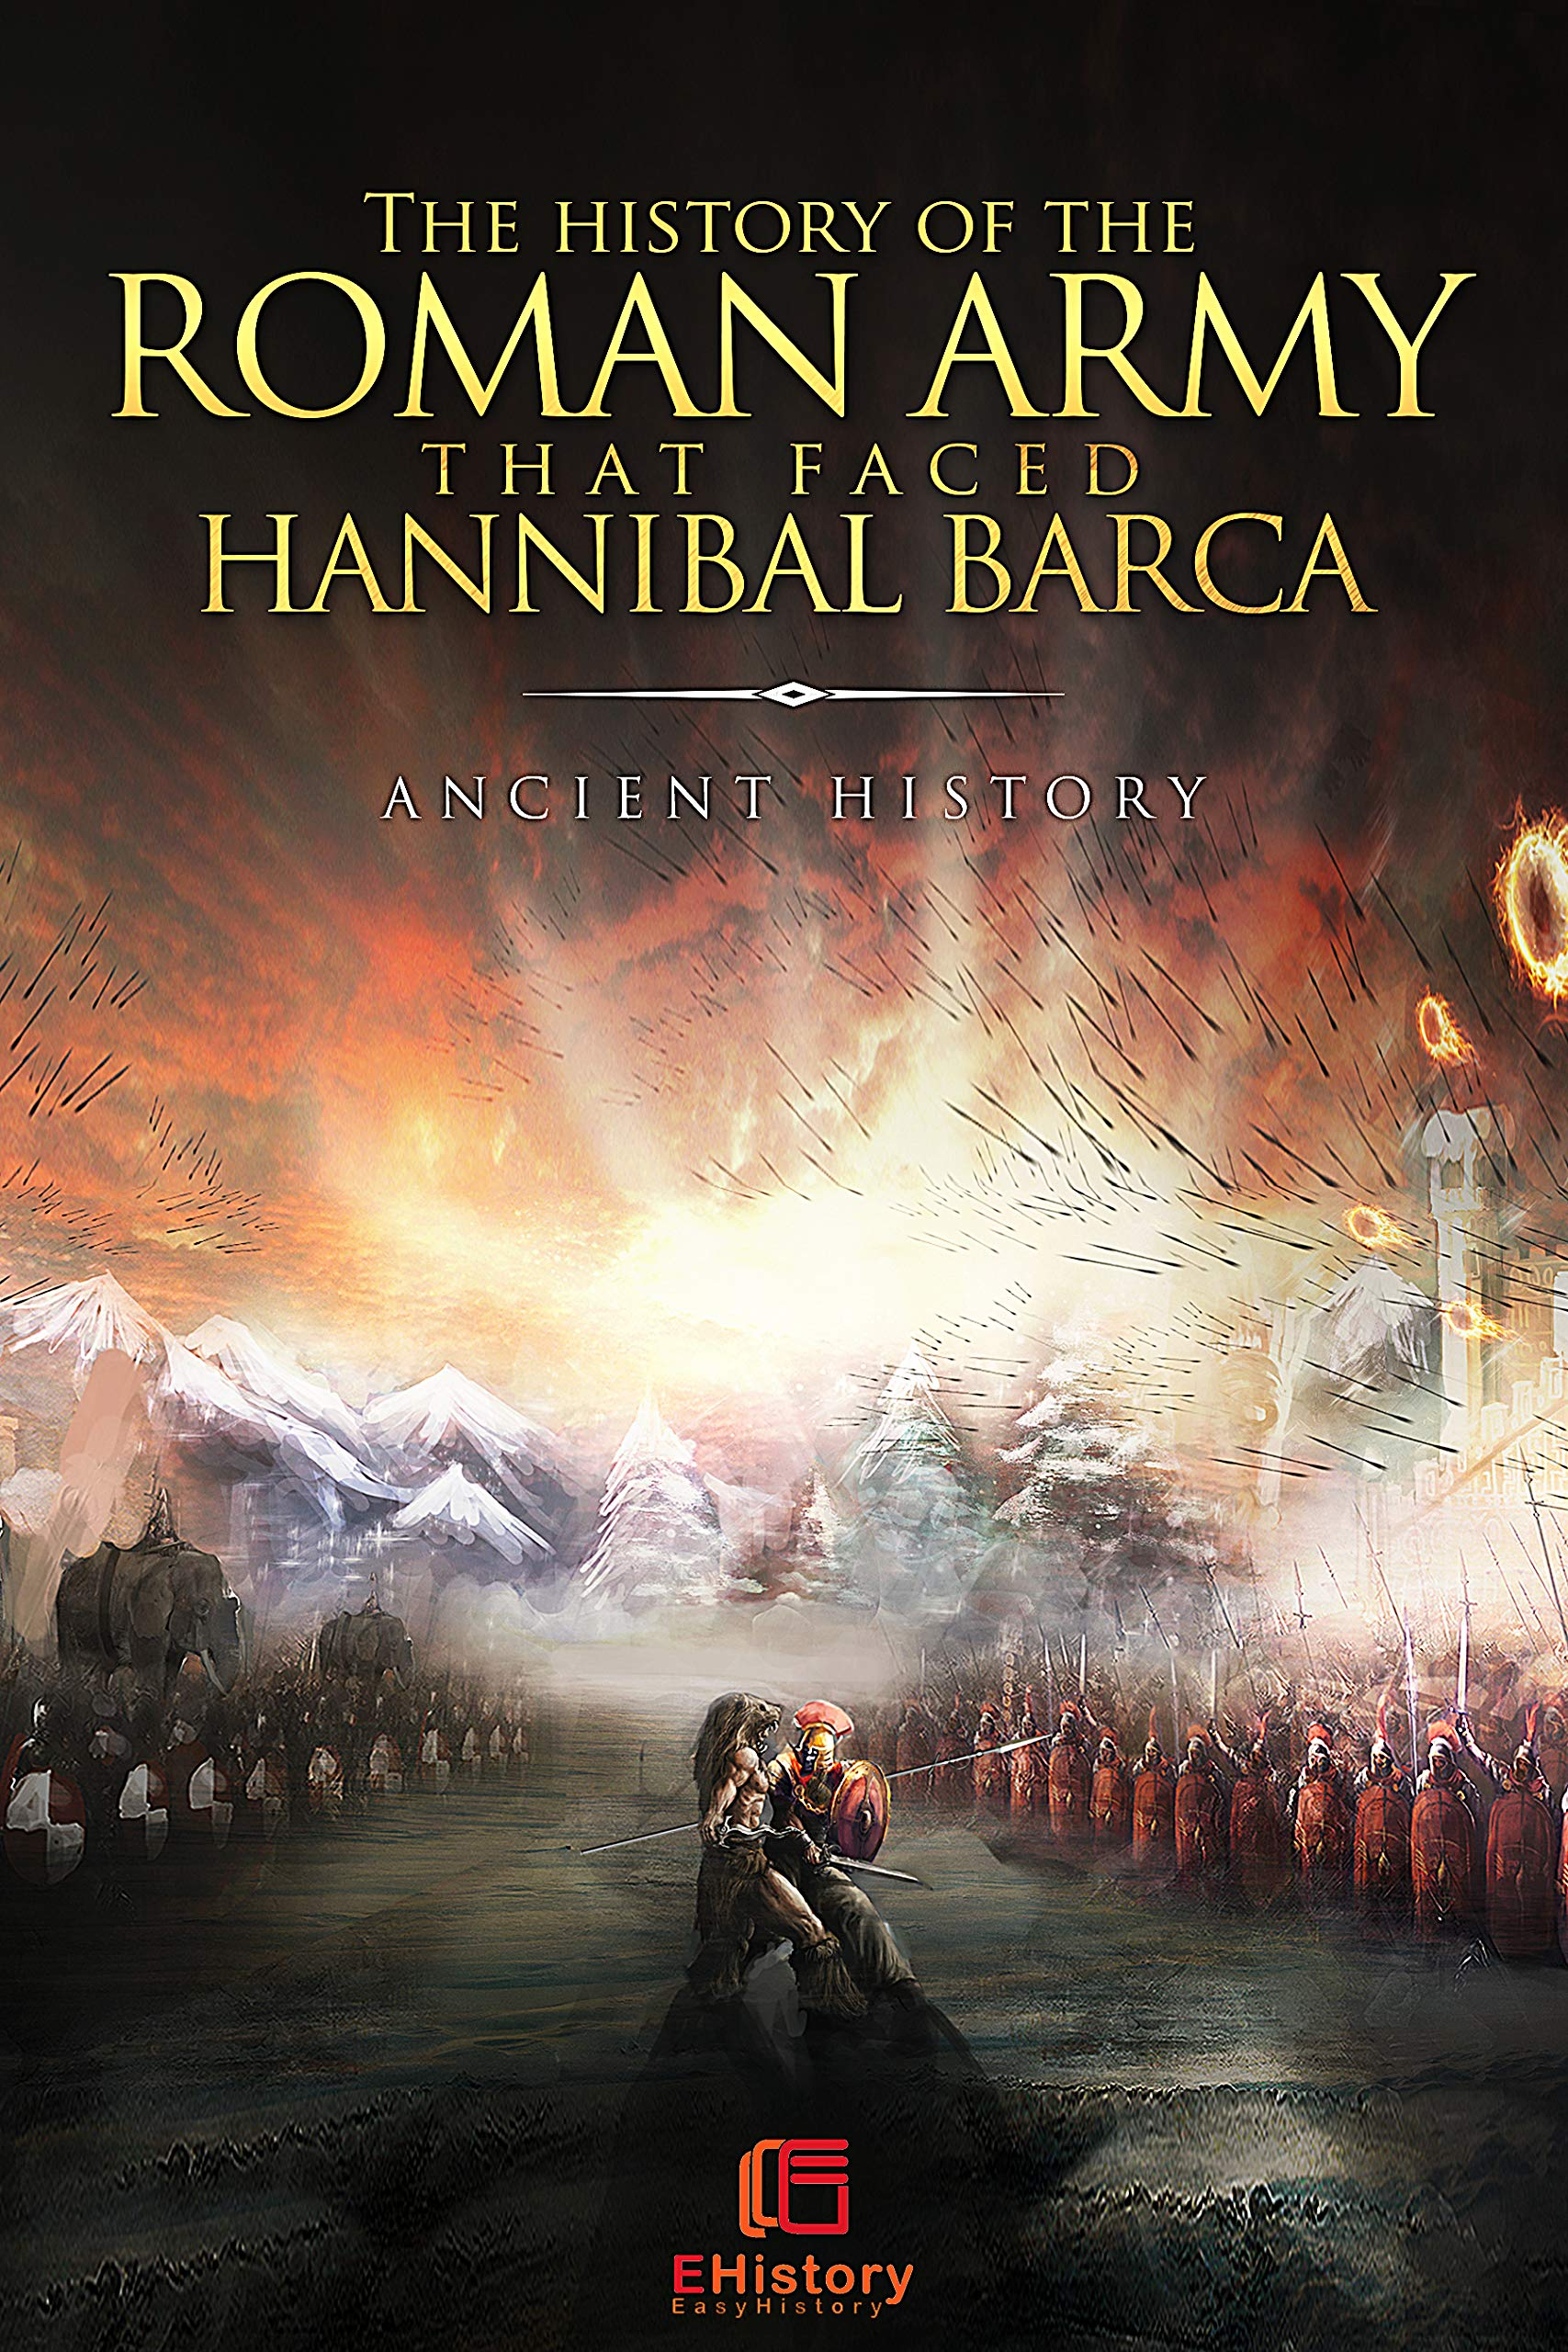 Ancient History: The History of the Roman Army that faced Hannibal Barca